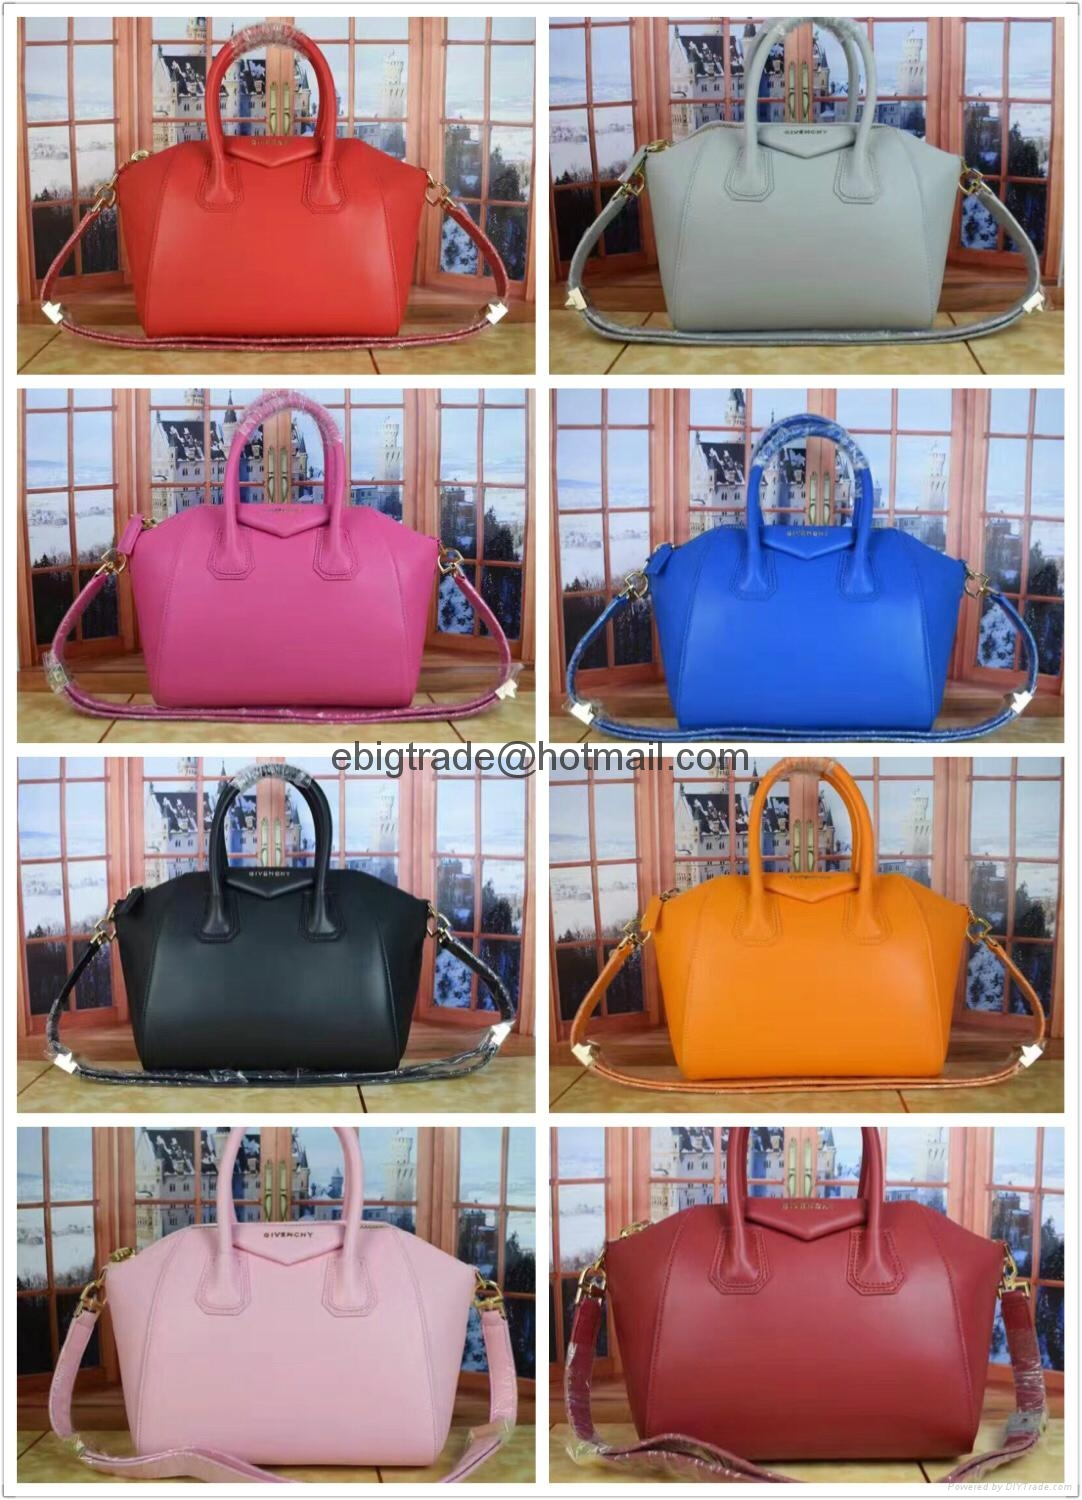 cheap Givenchy handbags